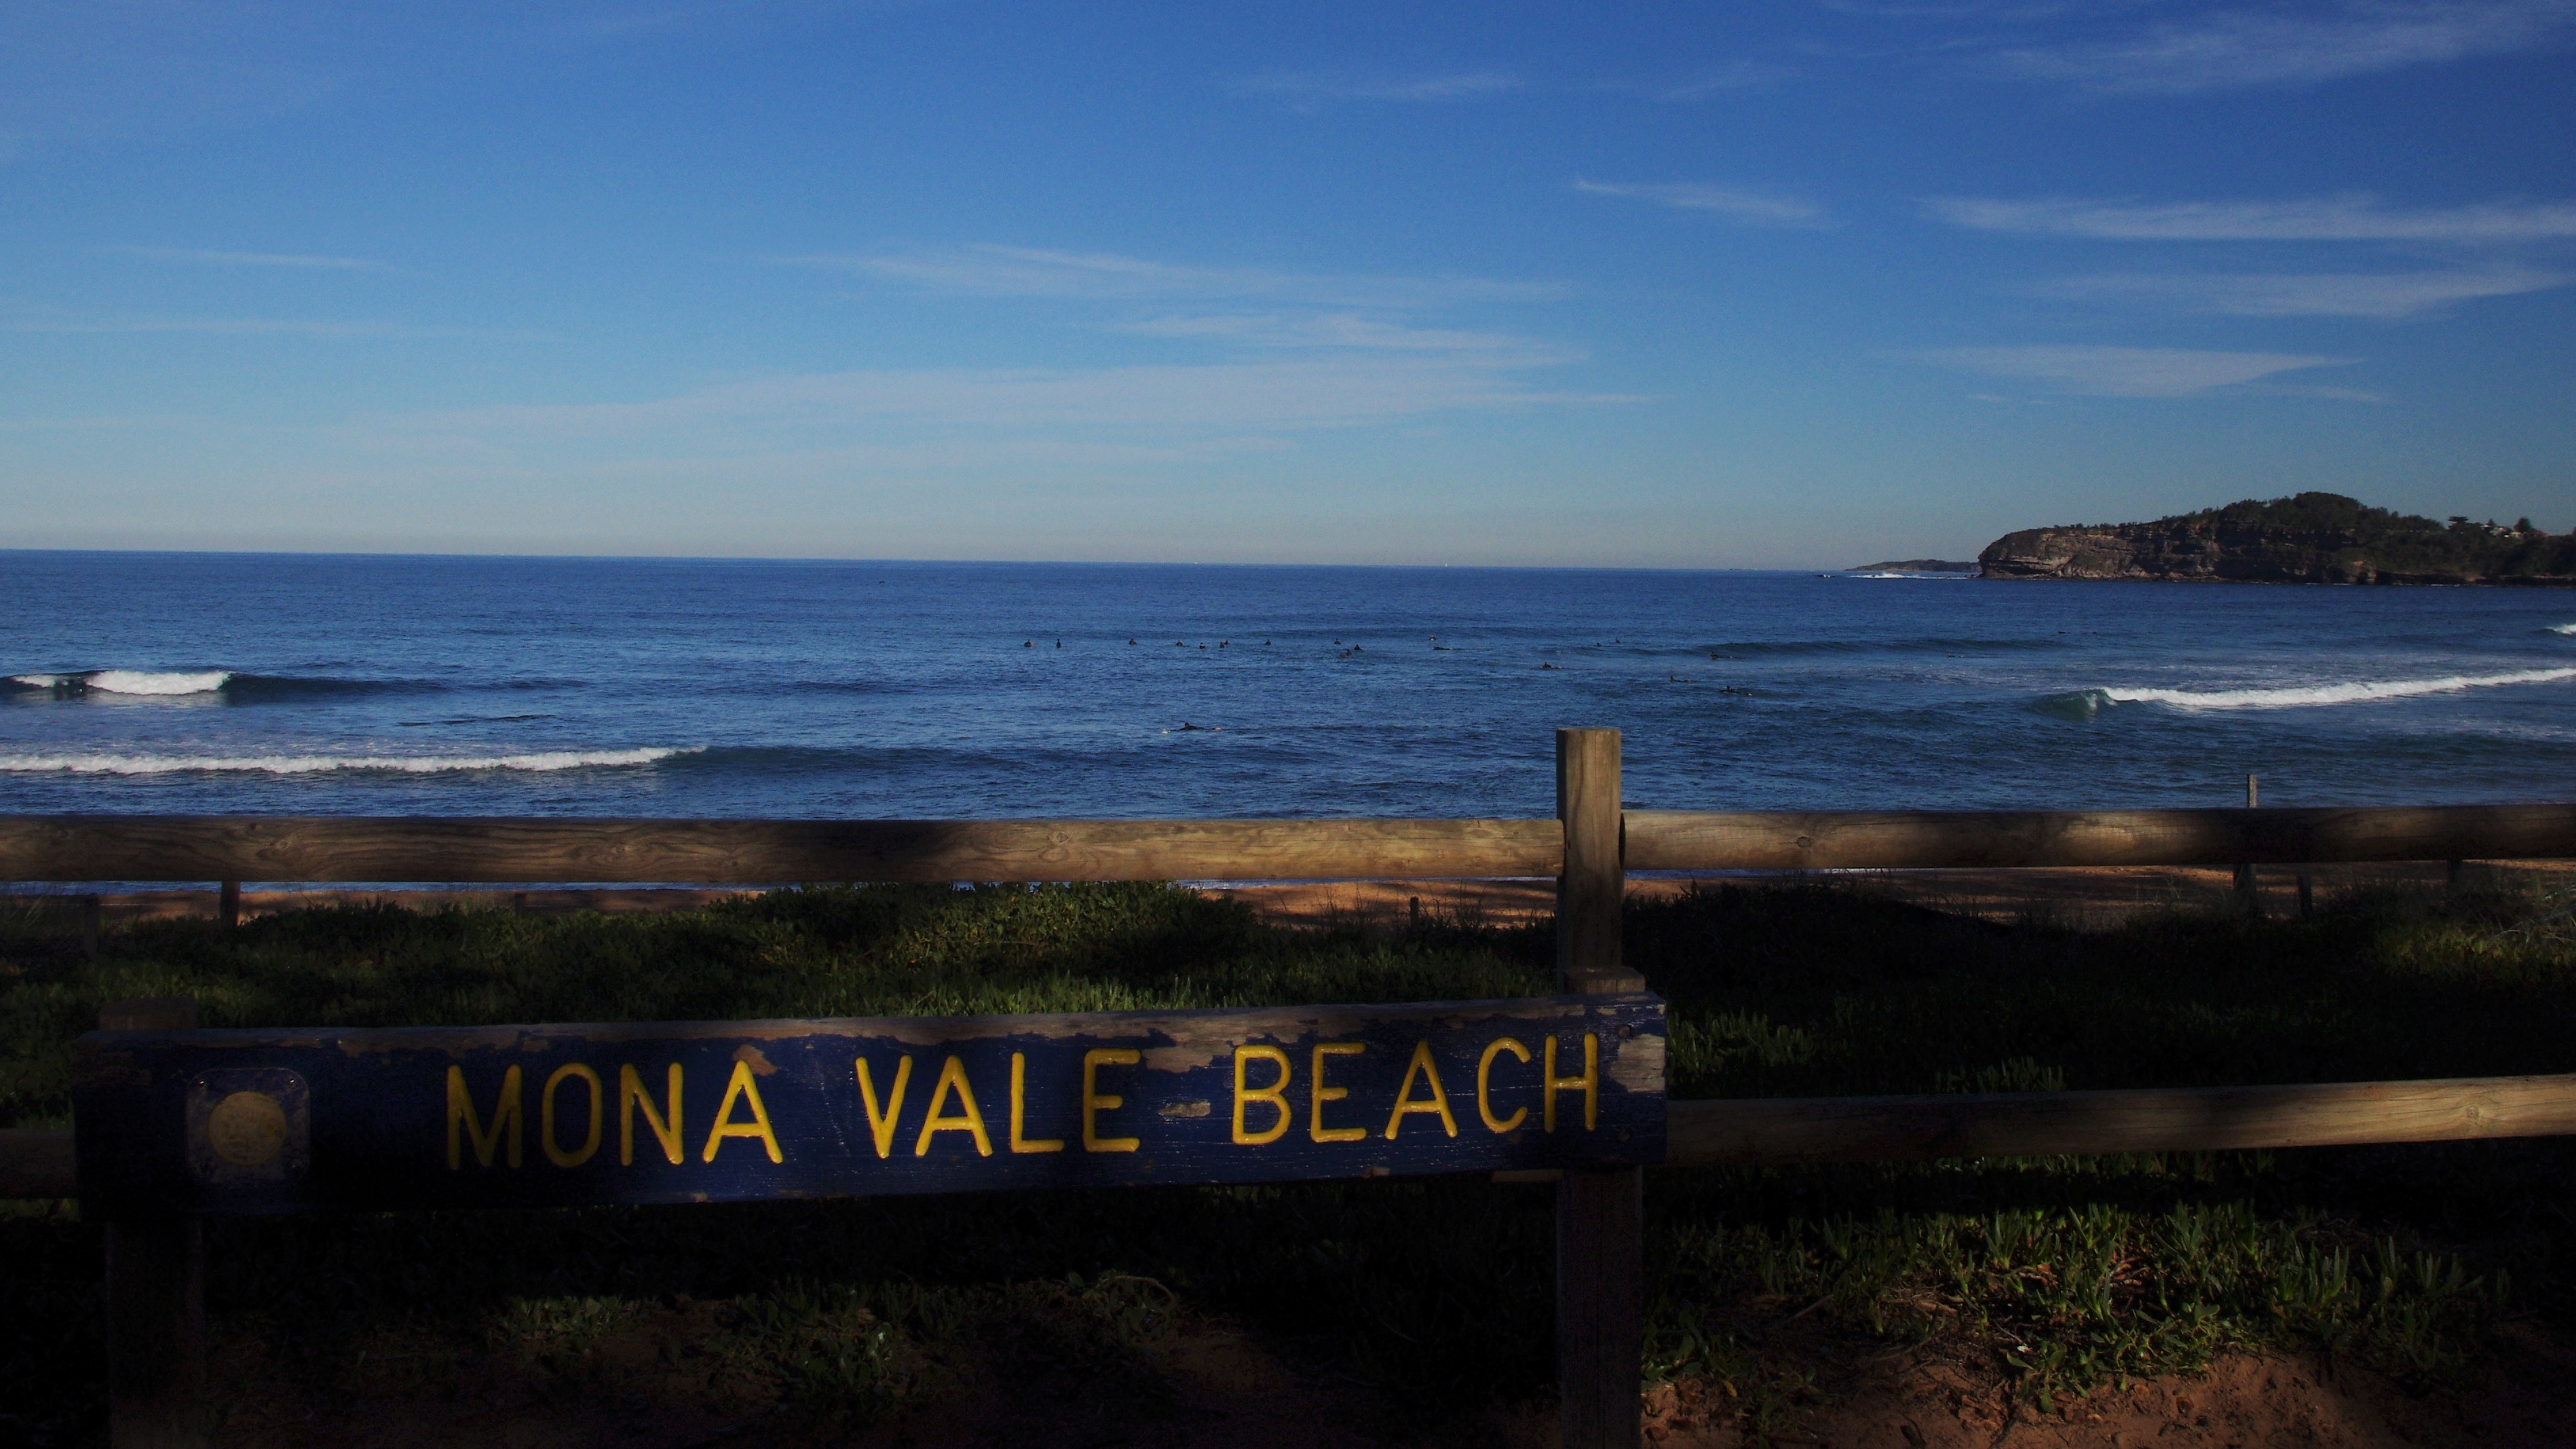 Beach No 52: Mona Vale – A winter solstice beach (23 June 2018)